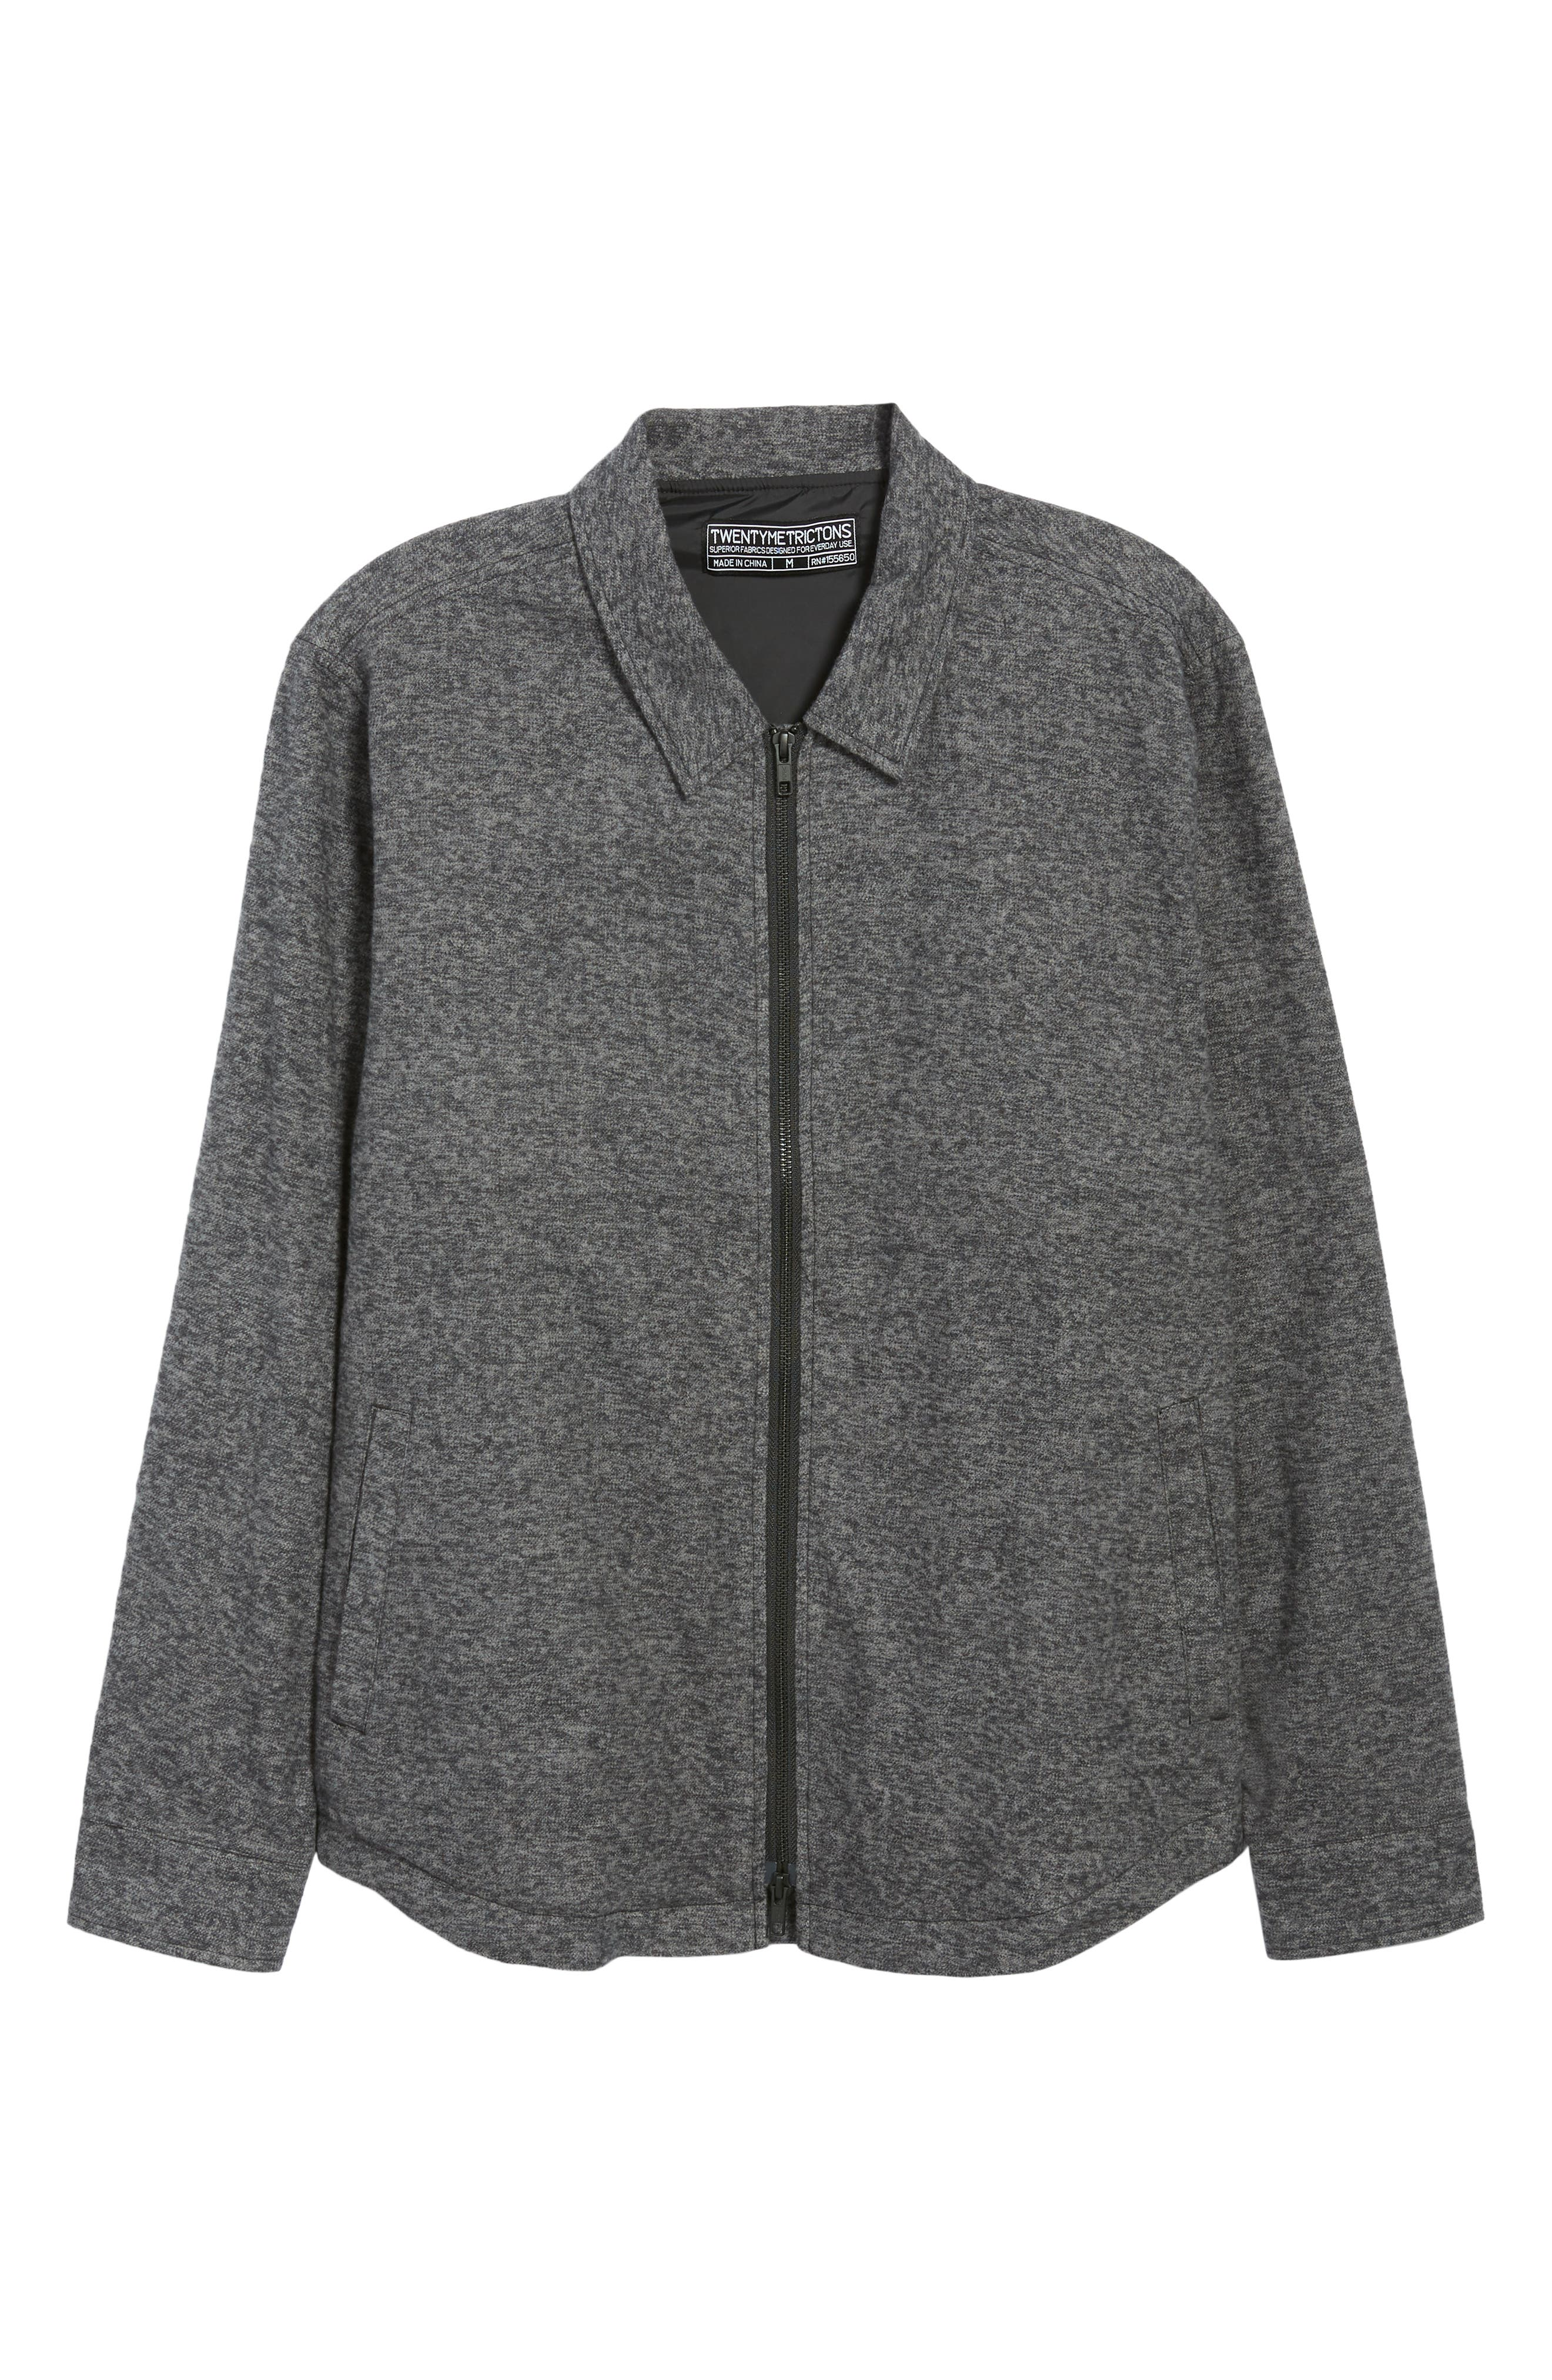 Trim Shirt Jacket,                             Alternate thumbnail 5, color,                             020